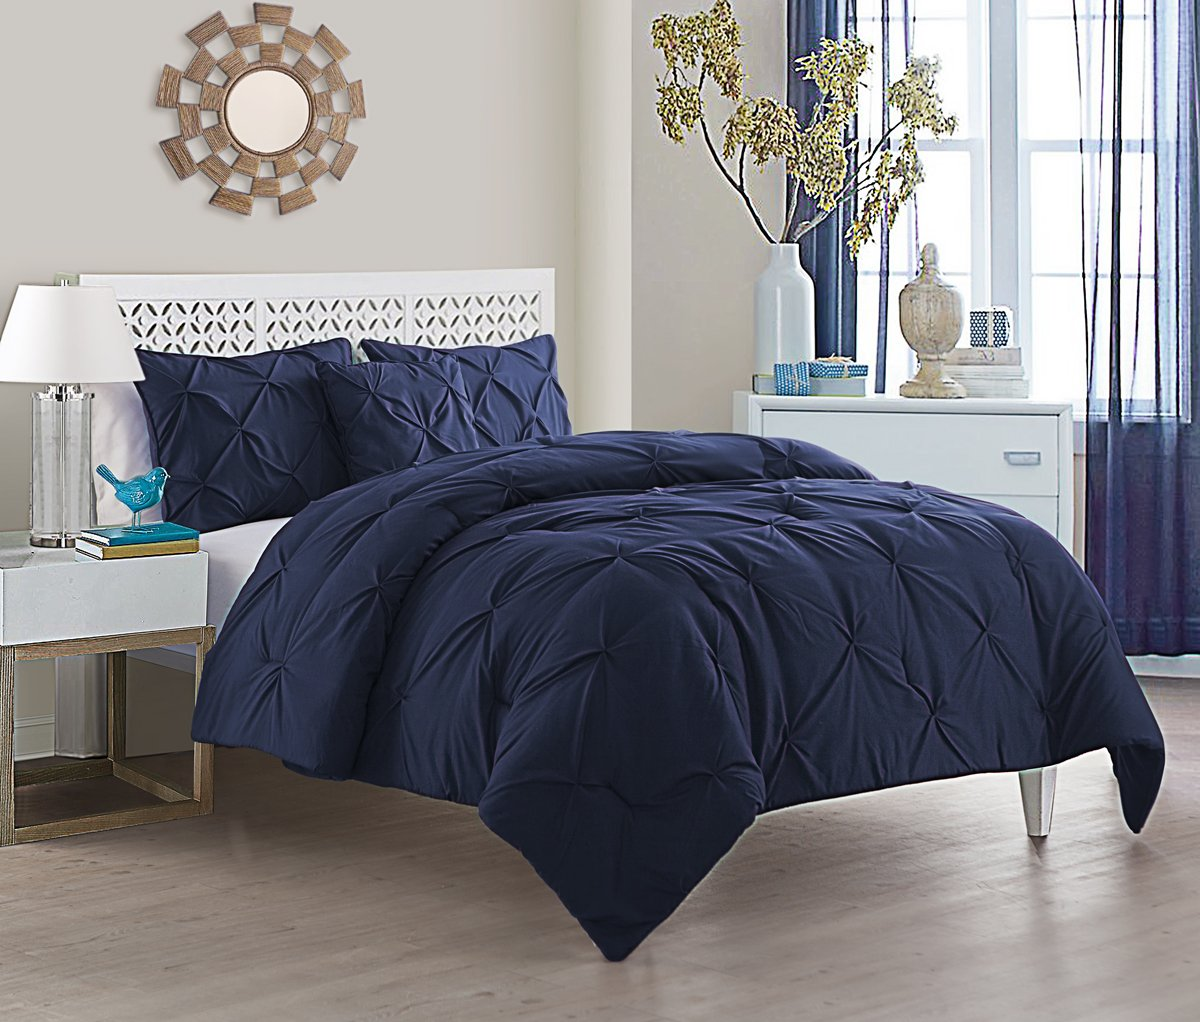 "VCNY Home Carmen 4PC Down Alternative Comforter Set Queen 90"" x 90"" Navy"